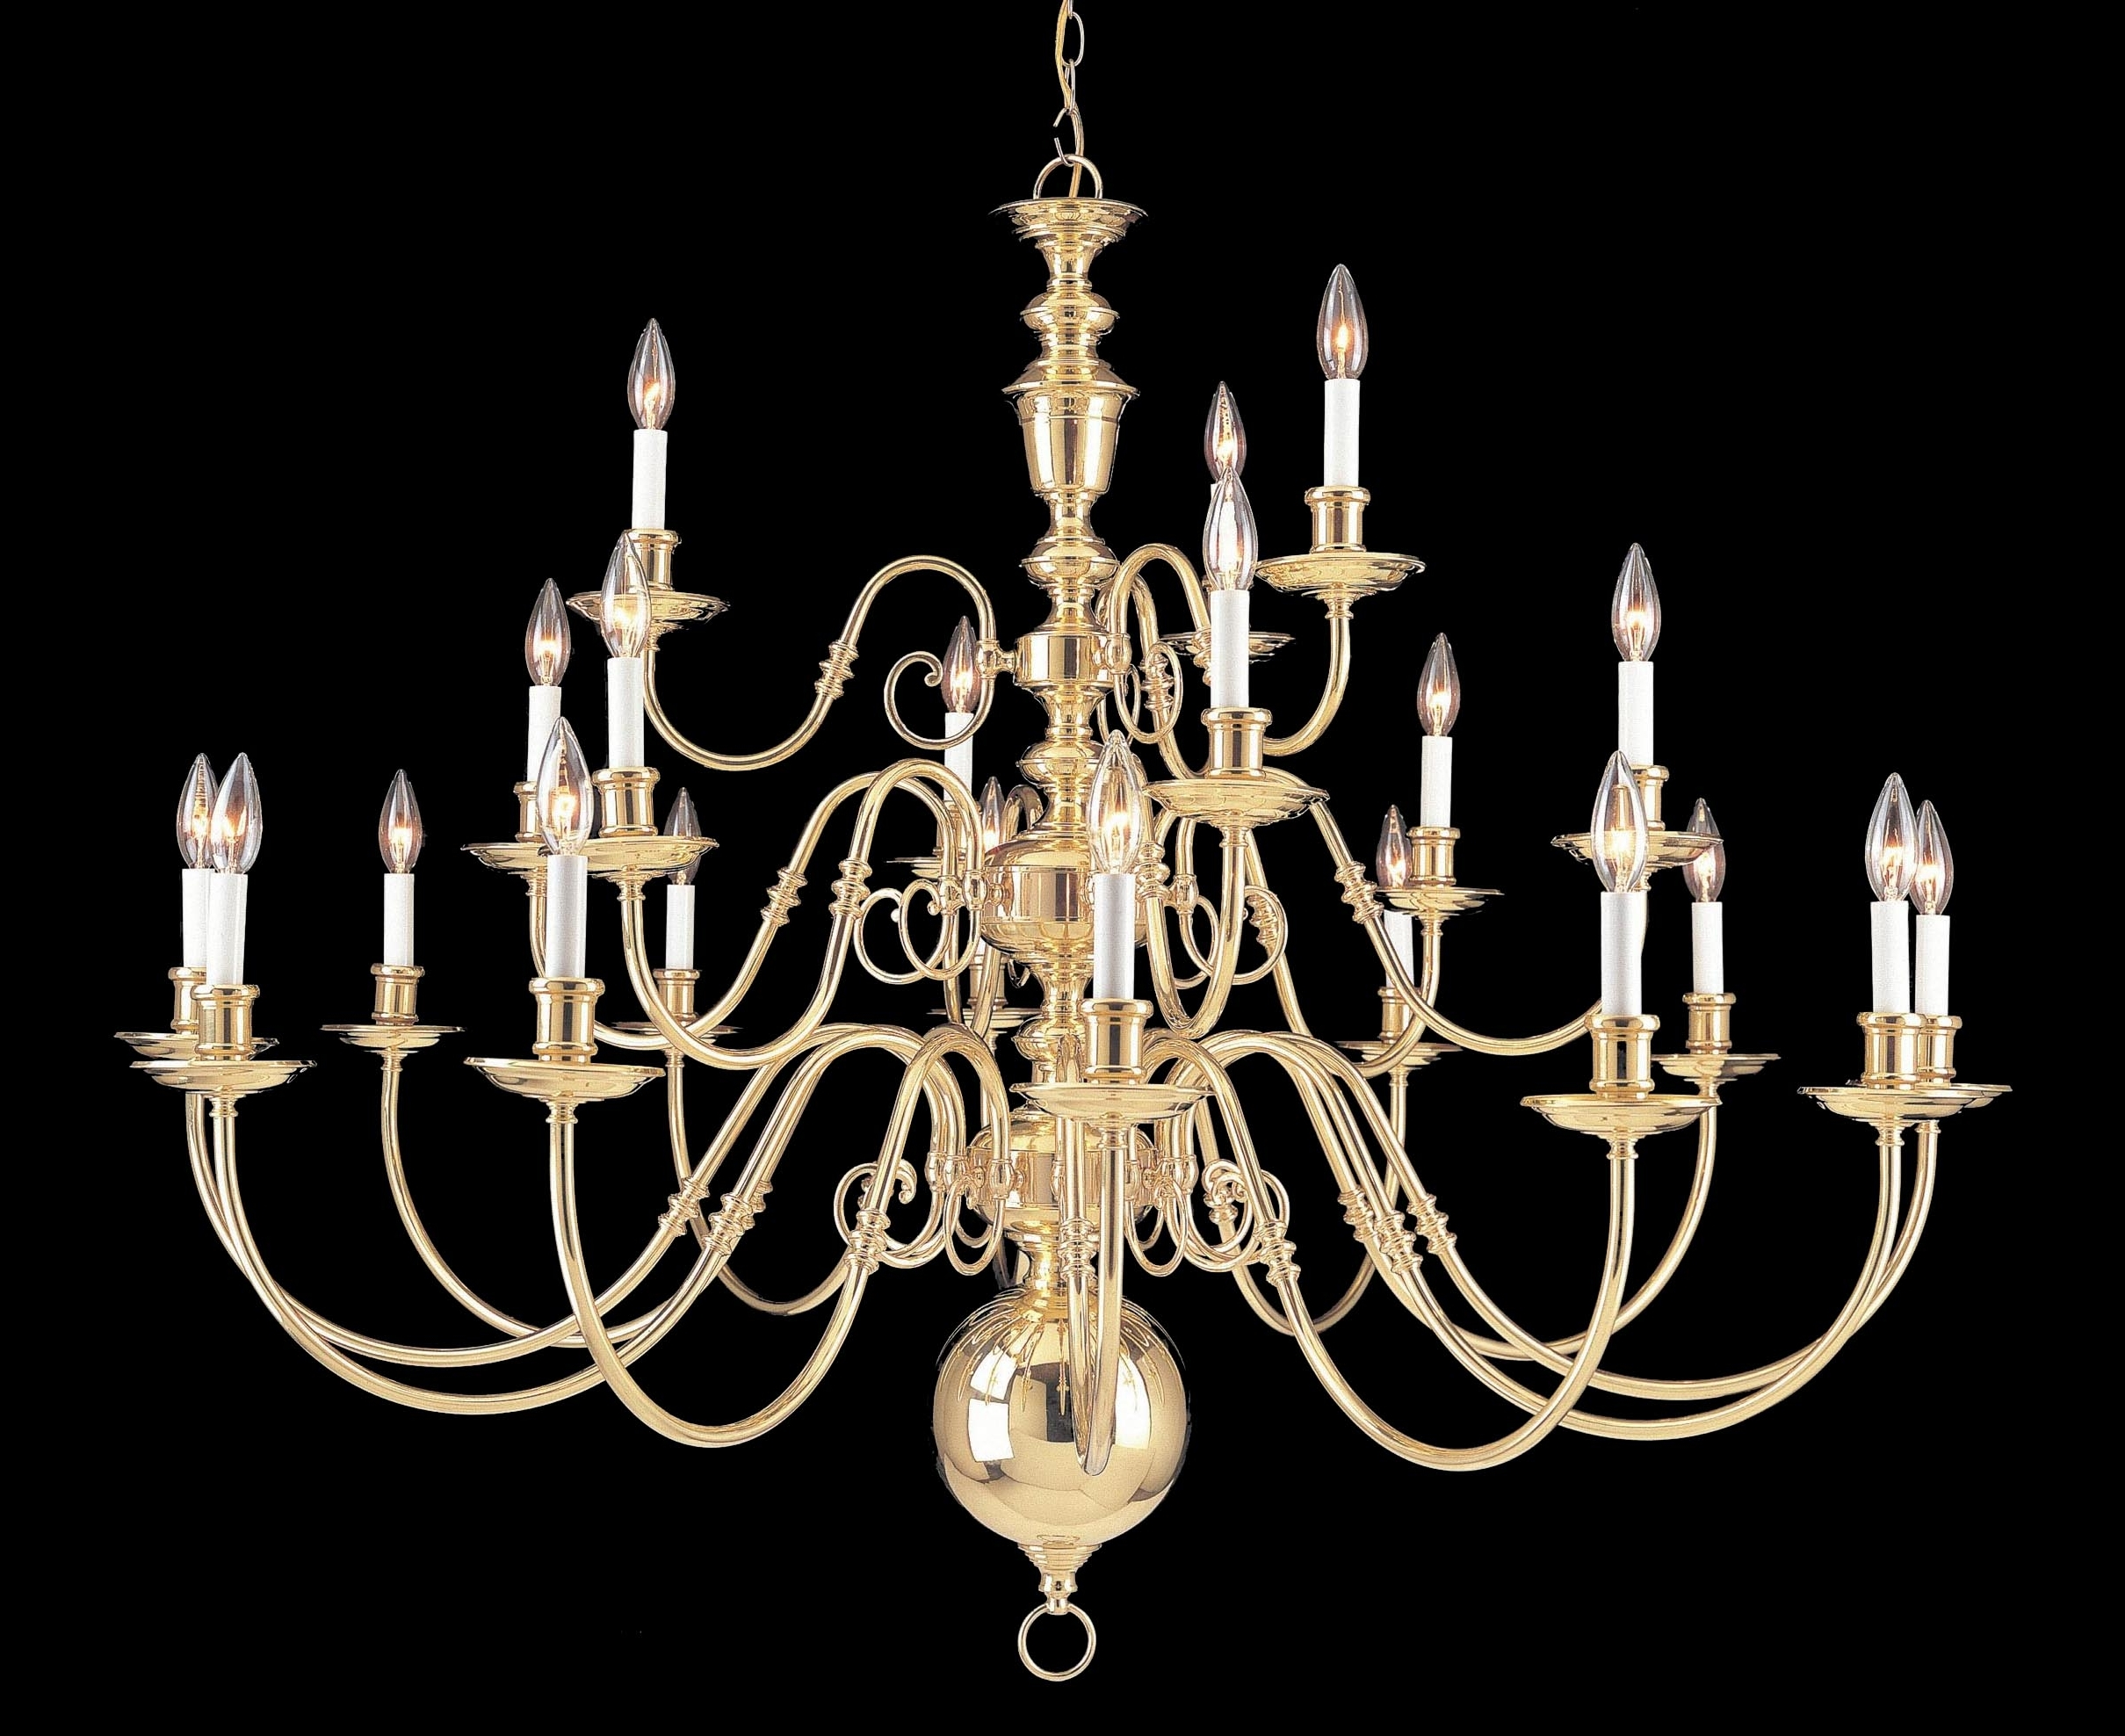 2017 Large Brass Chandelier In Largelighting – Brass/bronze Chandeliers (View 5 of 15)